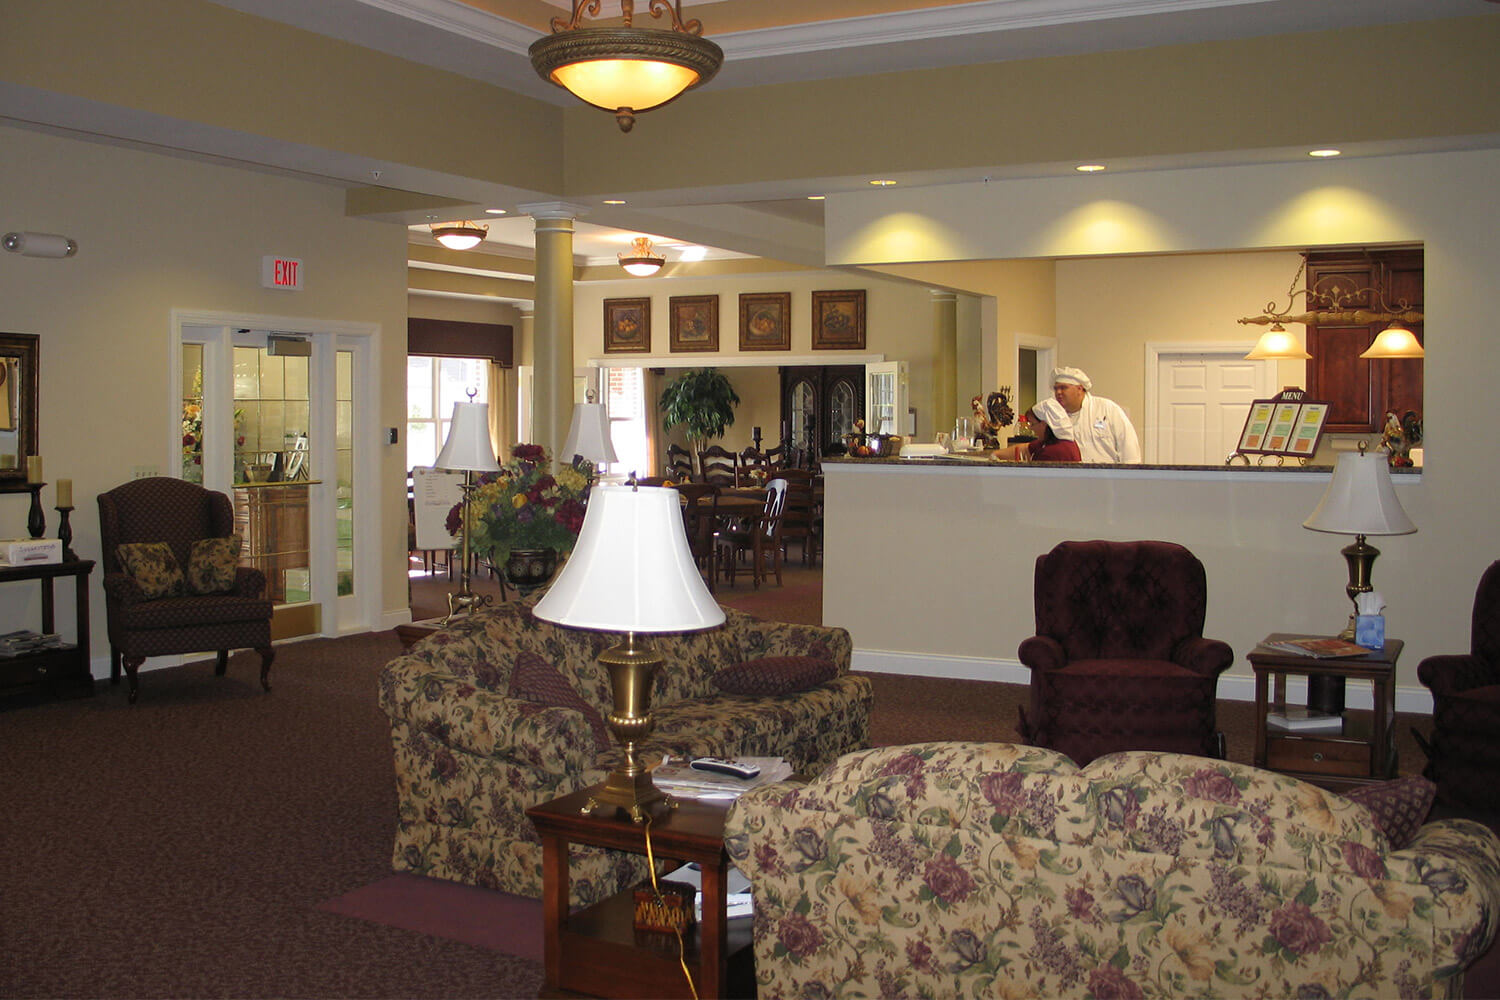 Paradise Park Assisted Living interior 2